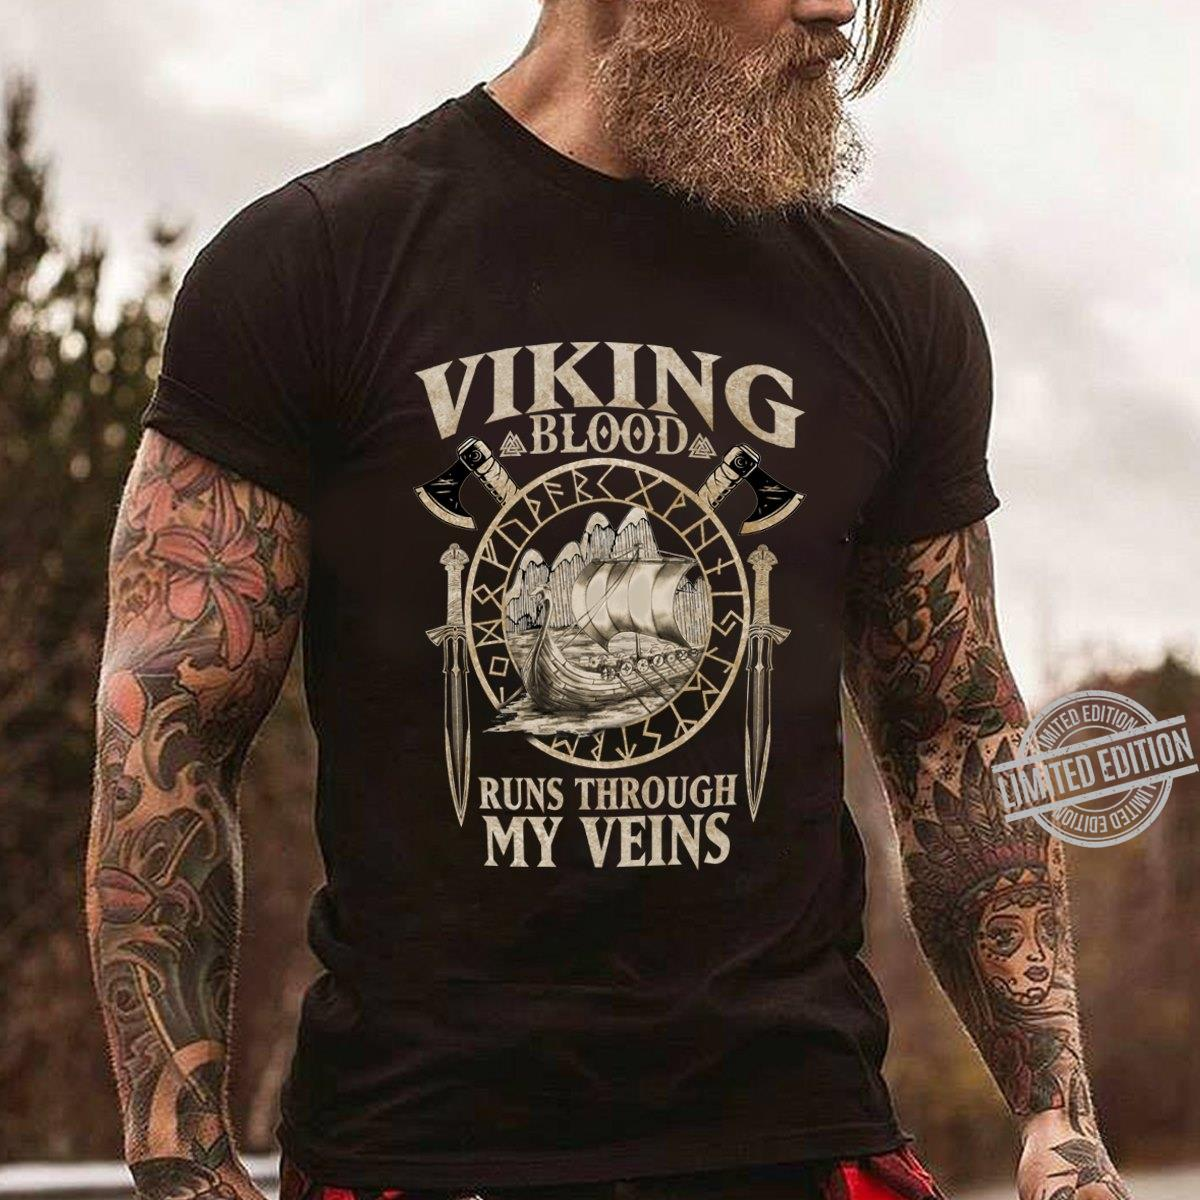 Viking Blood Runs Through My Veins Shirt